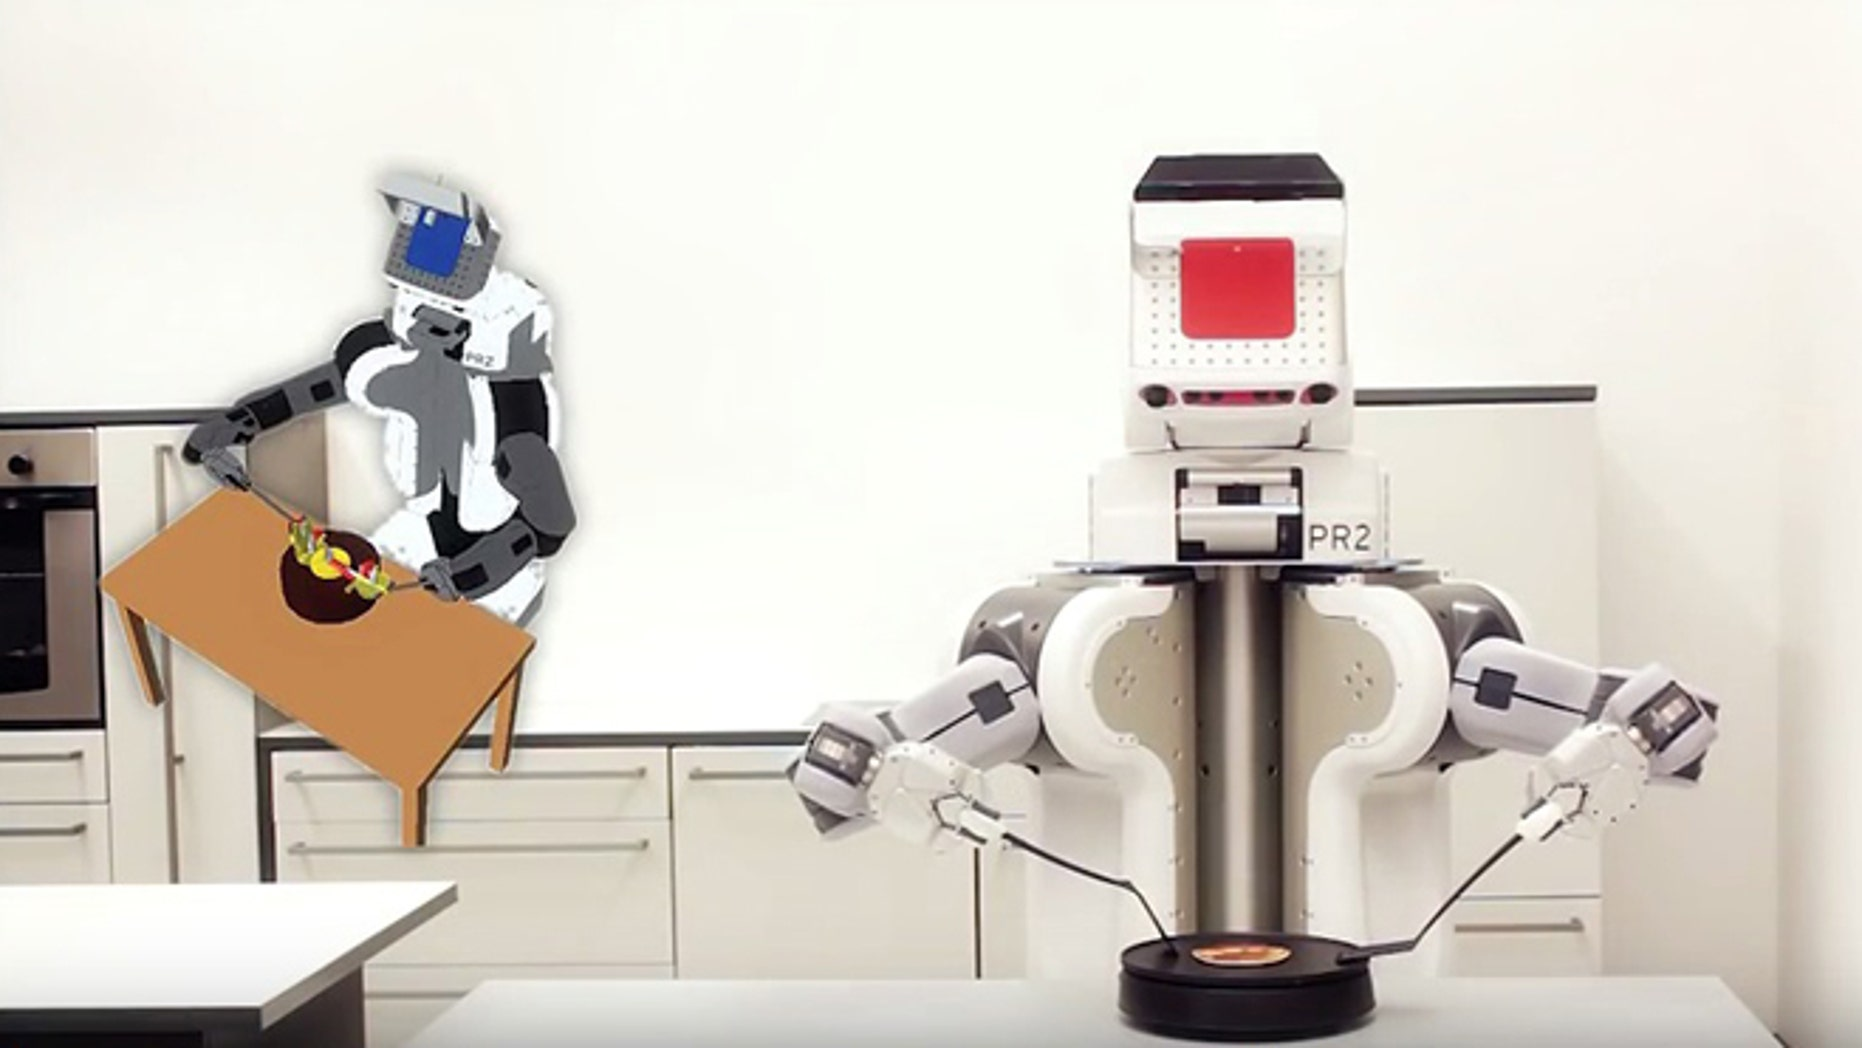 This robot knows how to cook a pancake.